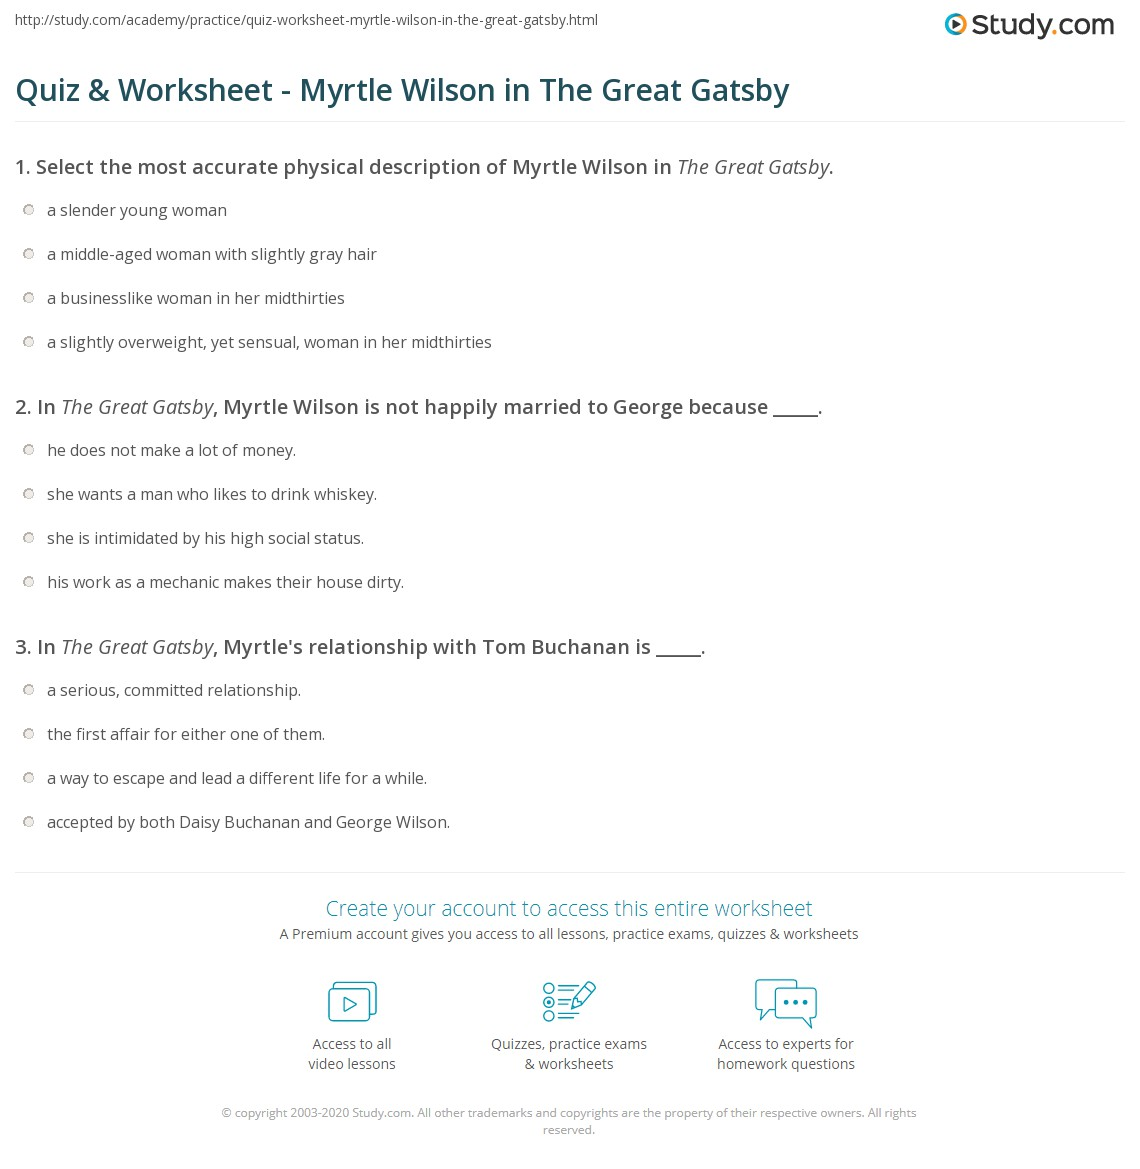 Quiz Worksheet Myrtle Wilson In The Great Gatsby Studycom